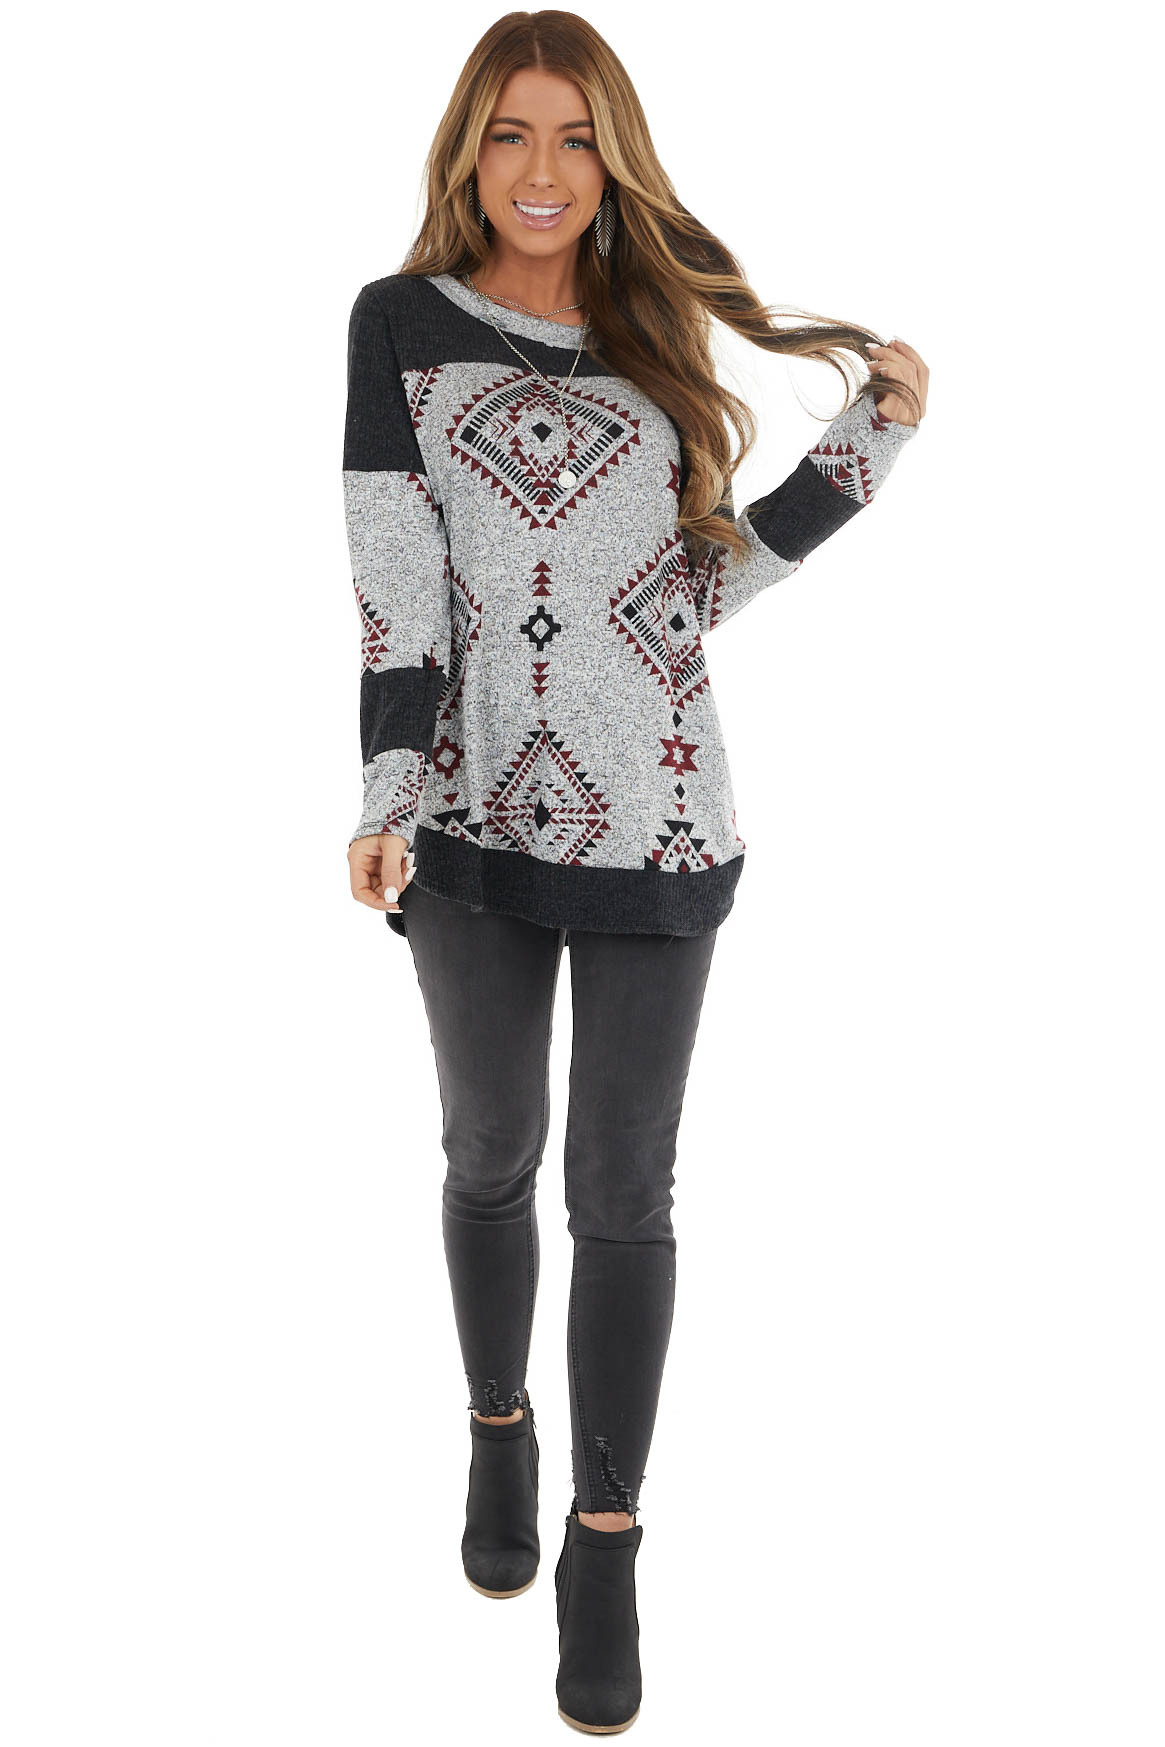 Black Two Tone Aztec Print Knit Top with Raw Edge Details